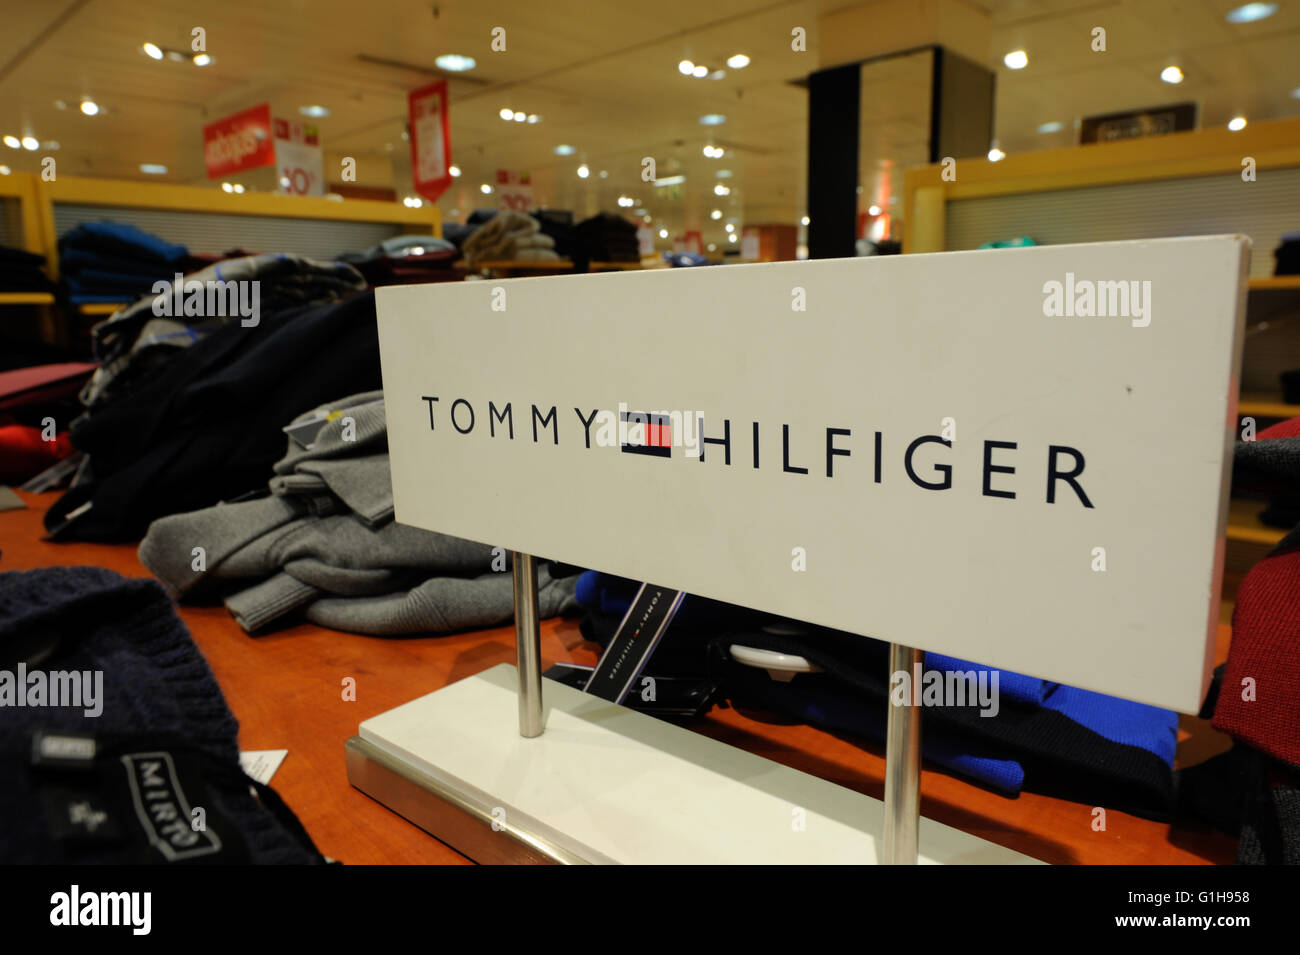 0abccc03 Tommy Hilfiger Clothes Stock Photos & Tommy Hilfiger Clothes Stock ...